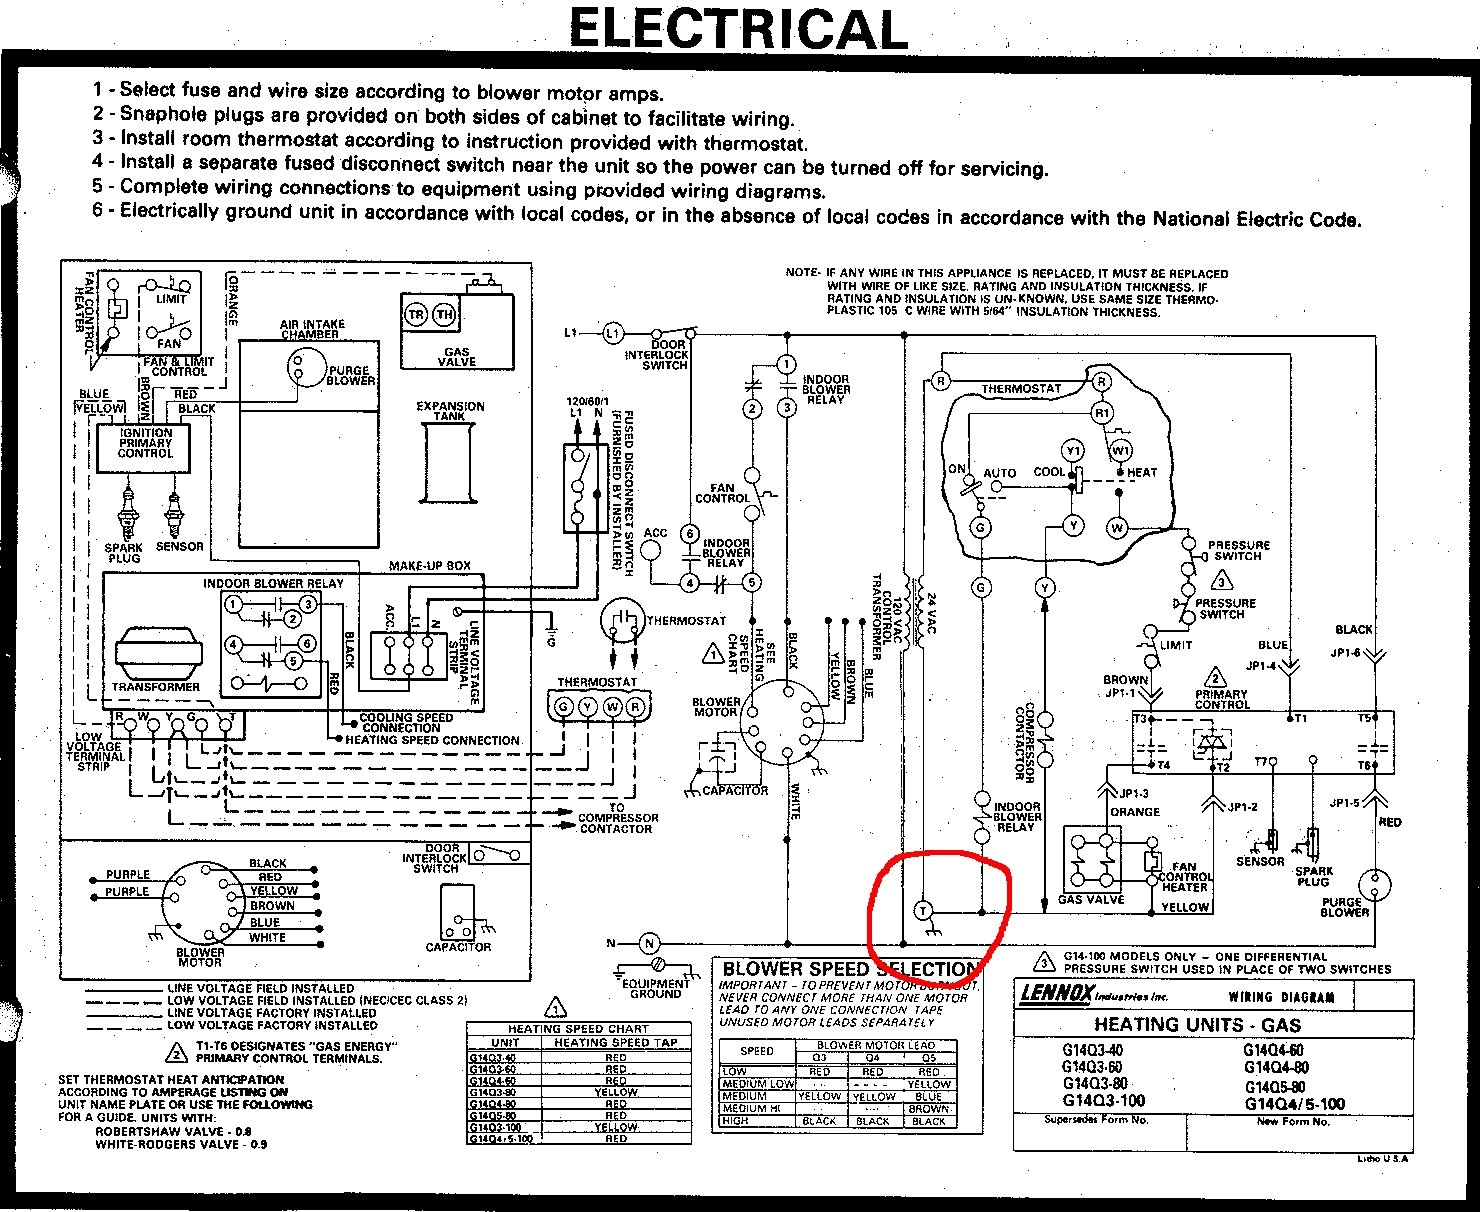 lennox furnace thermostat wiring diagram hecho modern design oflennox furnace wiring diagram hecho box wiring diagram rh 45 pfotenpower ev de